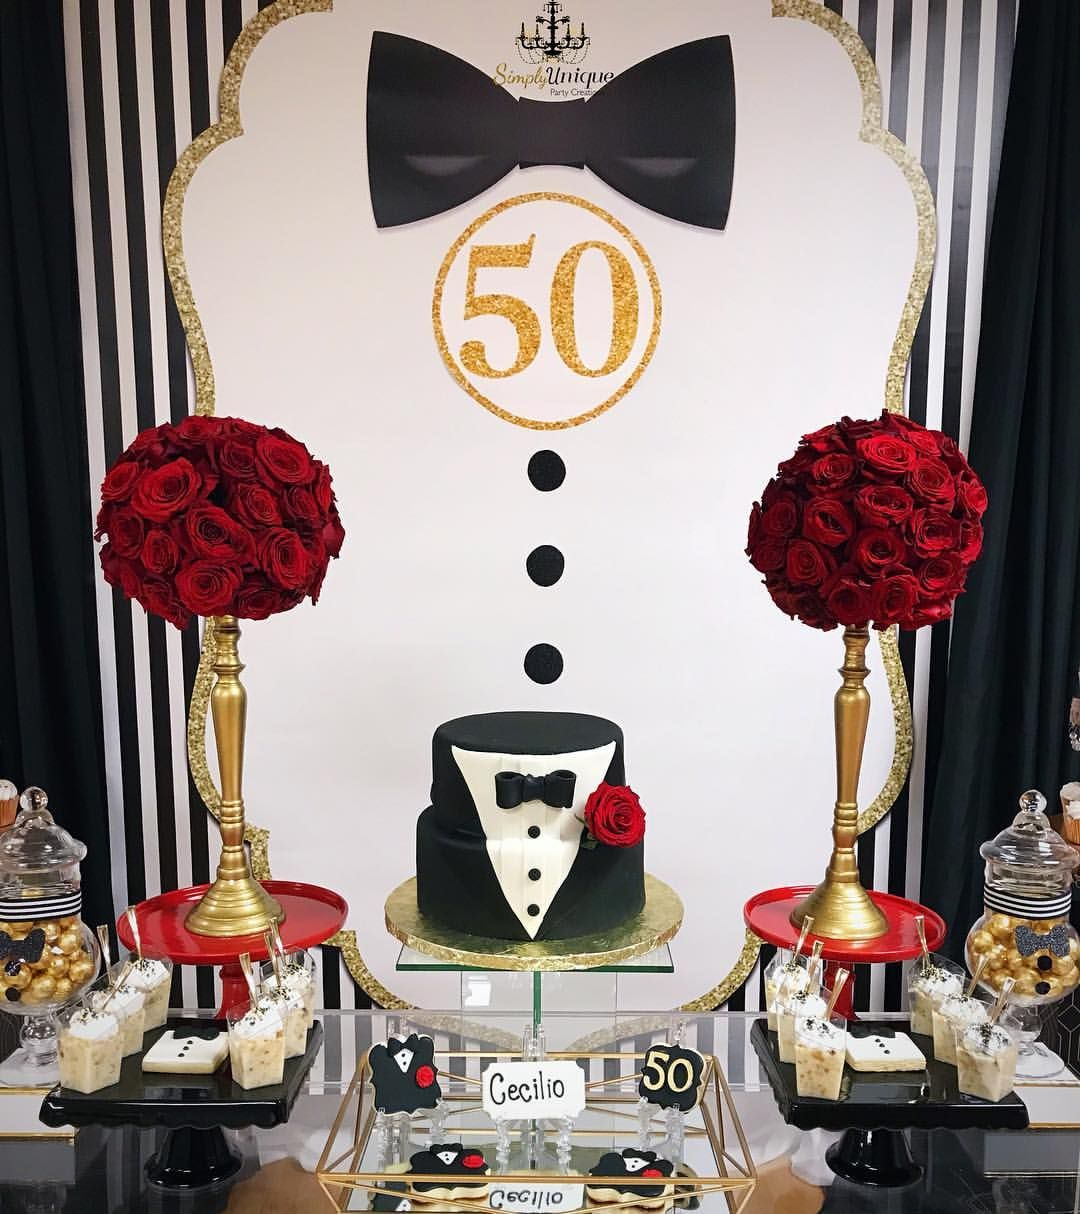 Gentleman Themed 50th Birthday Decorated By Us S 60th Birthday Party Decorations 40th Birthday Party Decorations 50th Birthday Party Ideas For Men